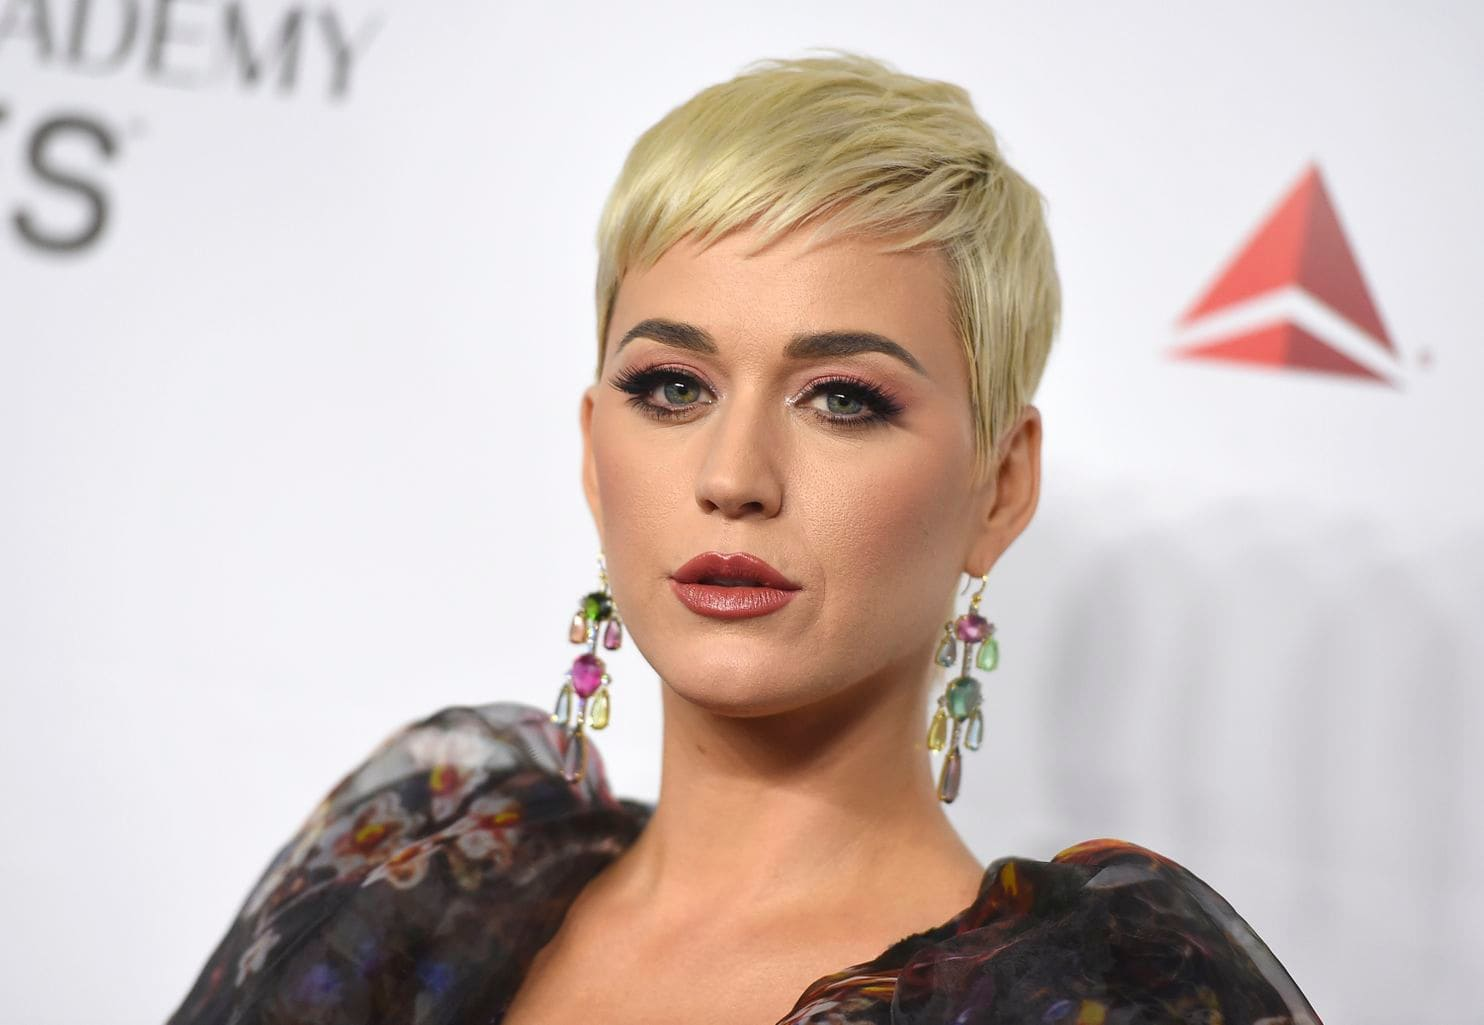 Katy Perry's blackface shoes garner criticisms, company removes them from collection